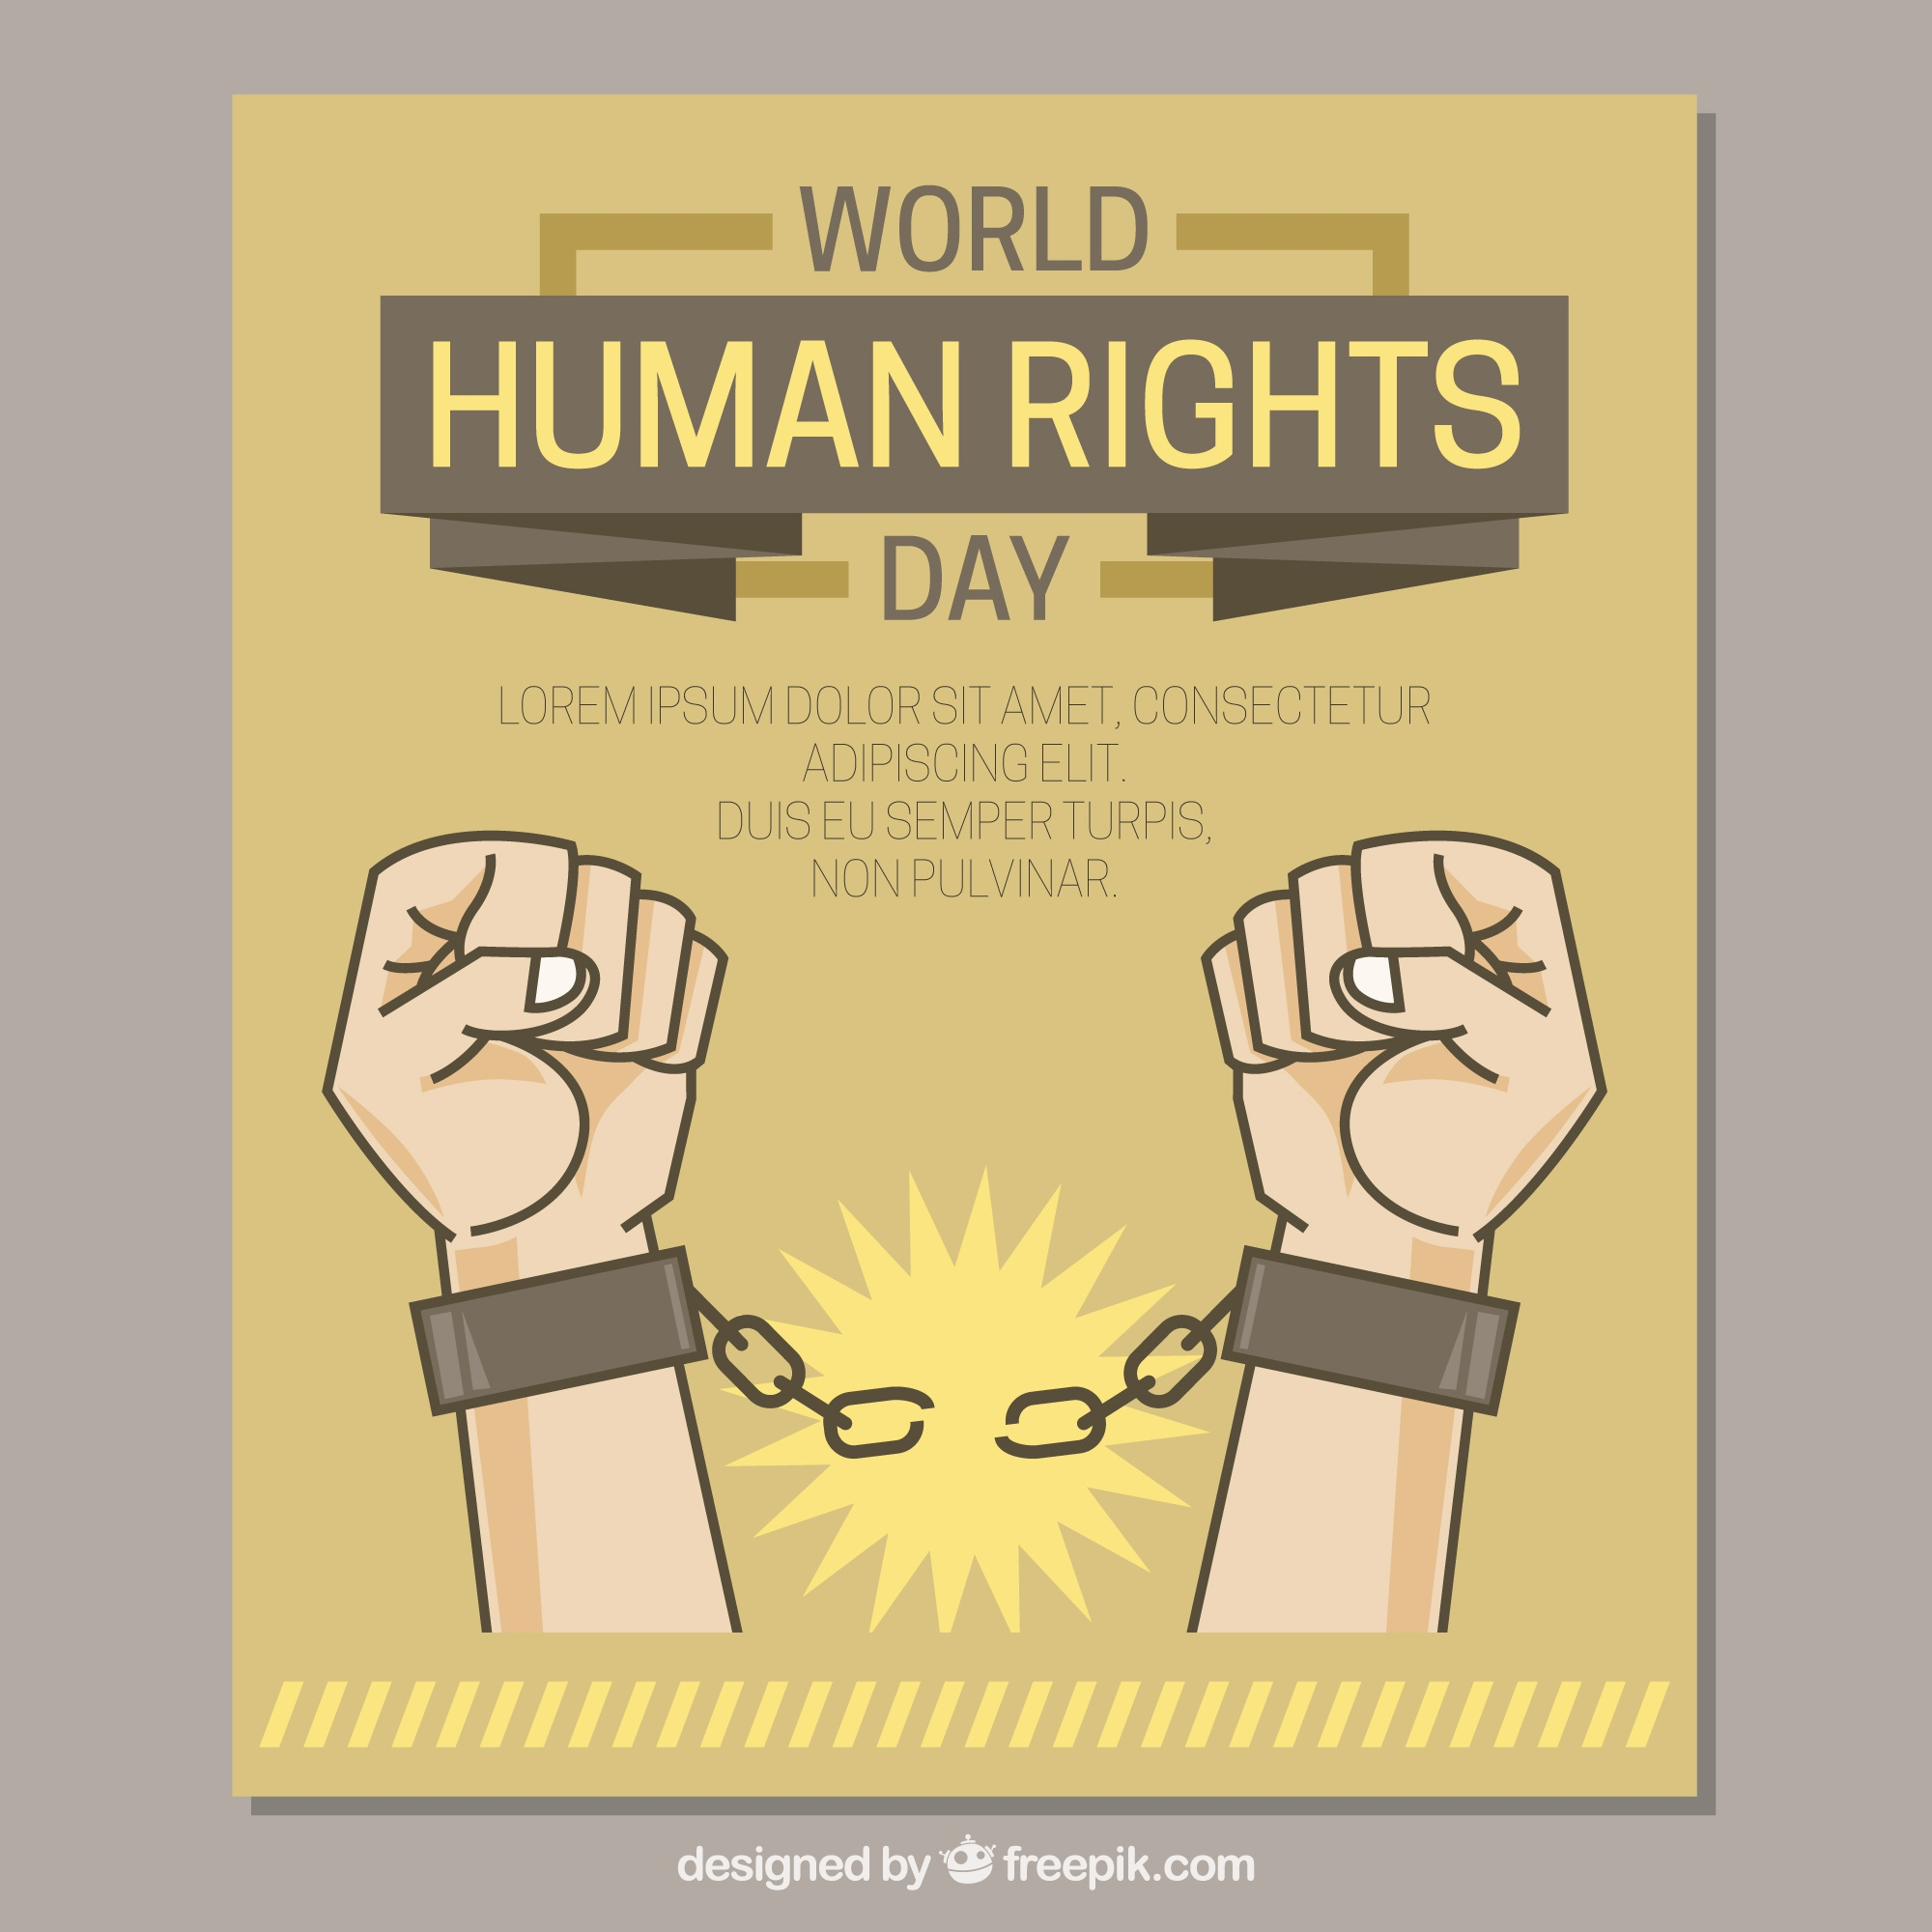 Hands that break chains, human rights day